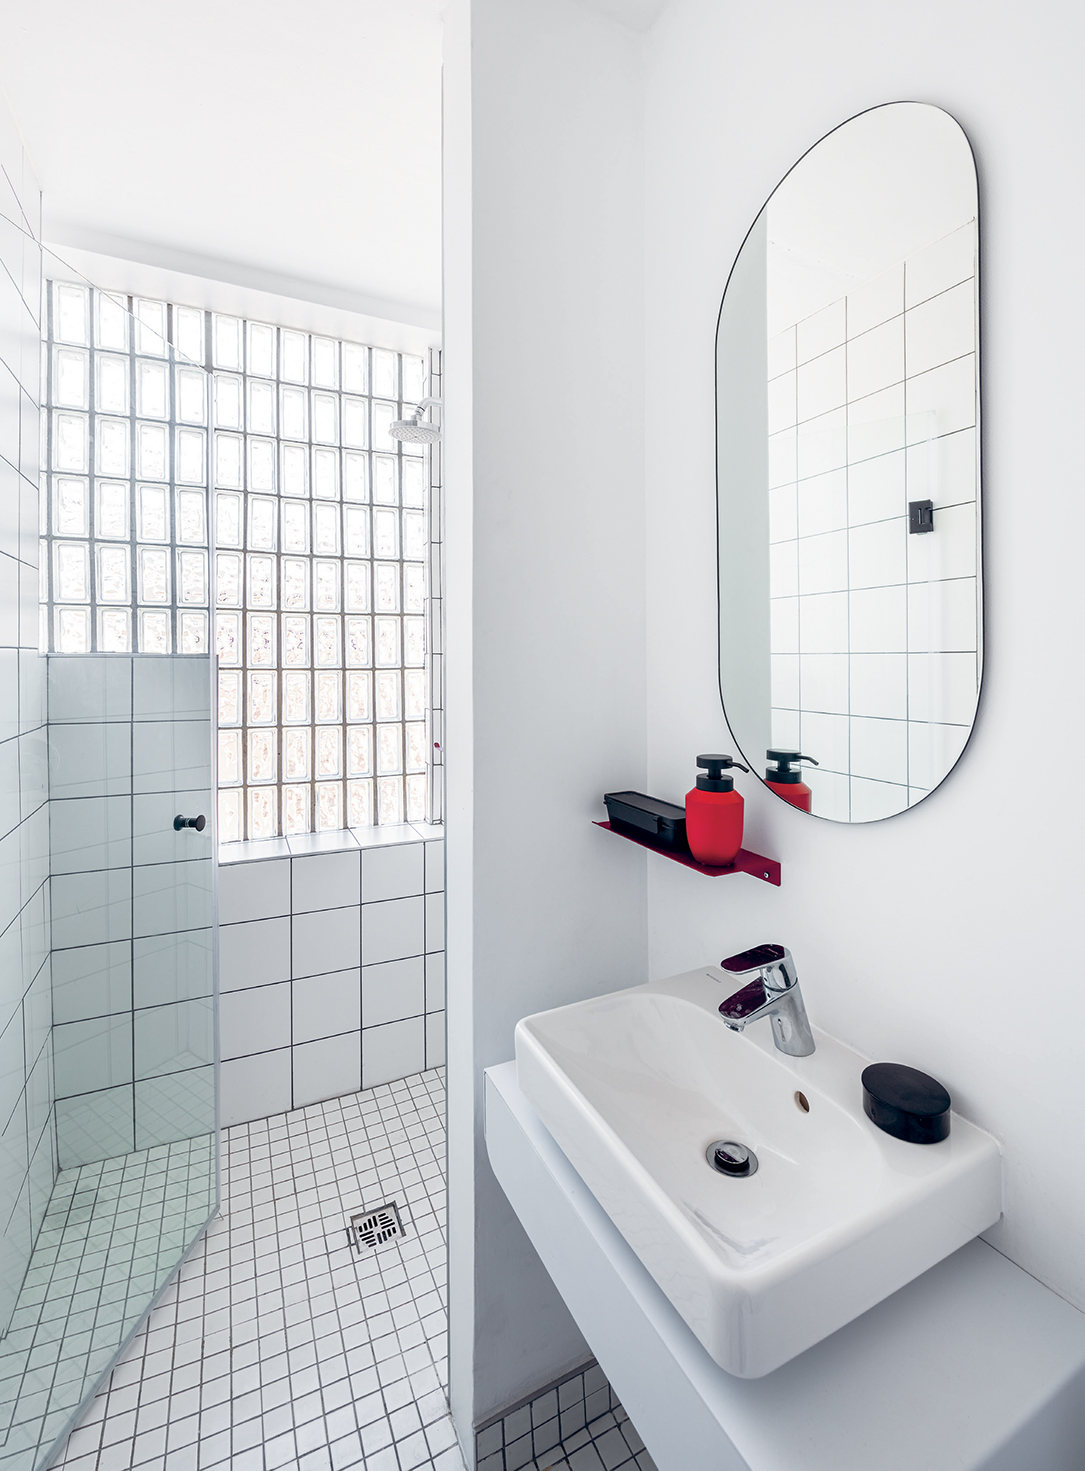 All bathroom fixtures are by Kink, another one of Theo's projects with TwoFiveFive partner André Krige.